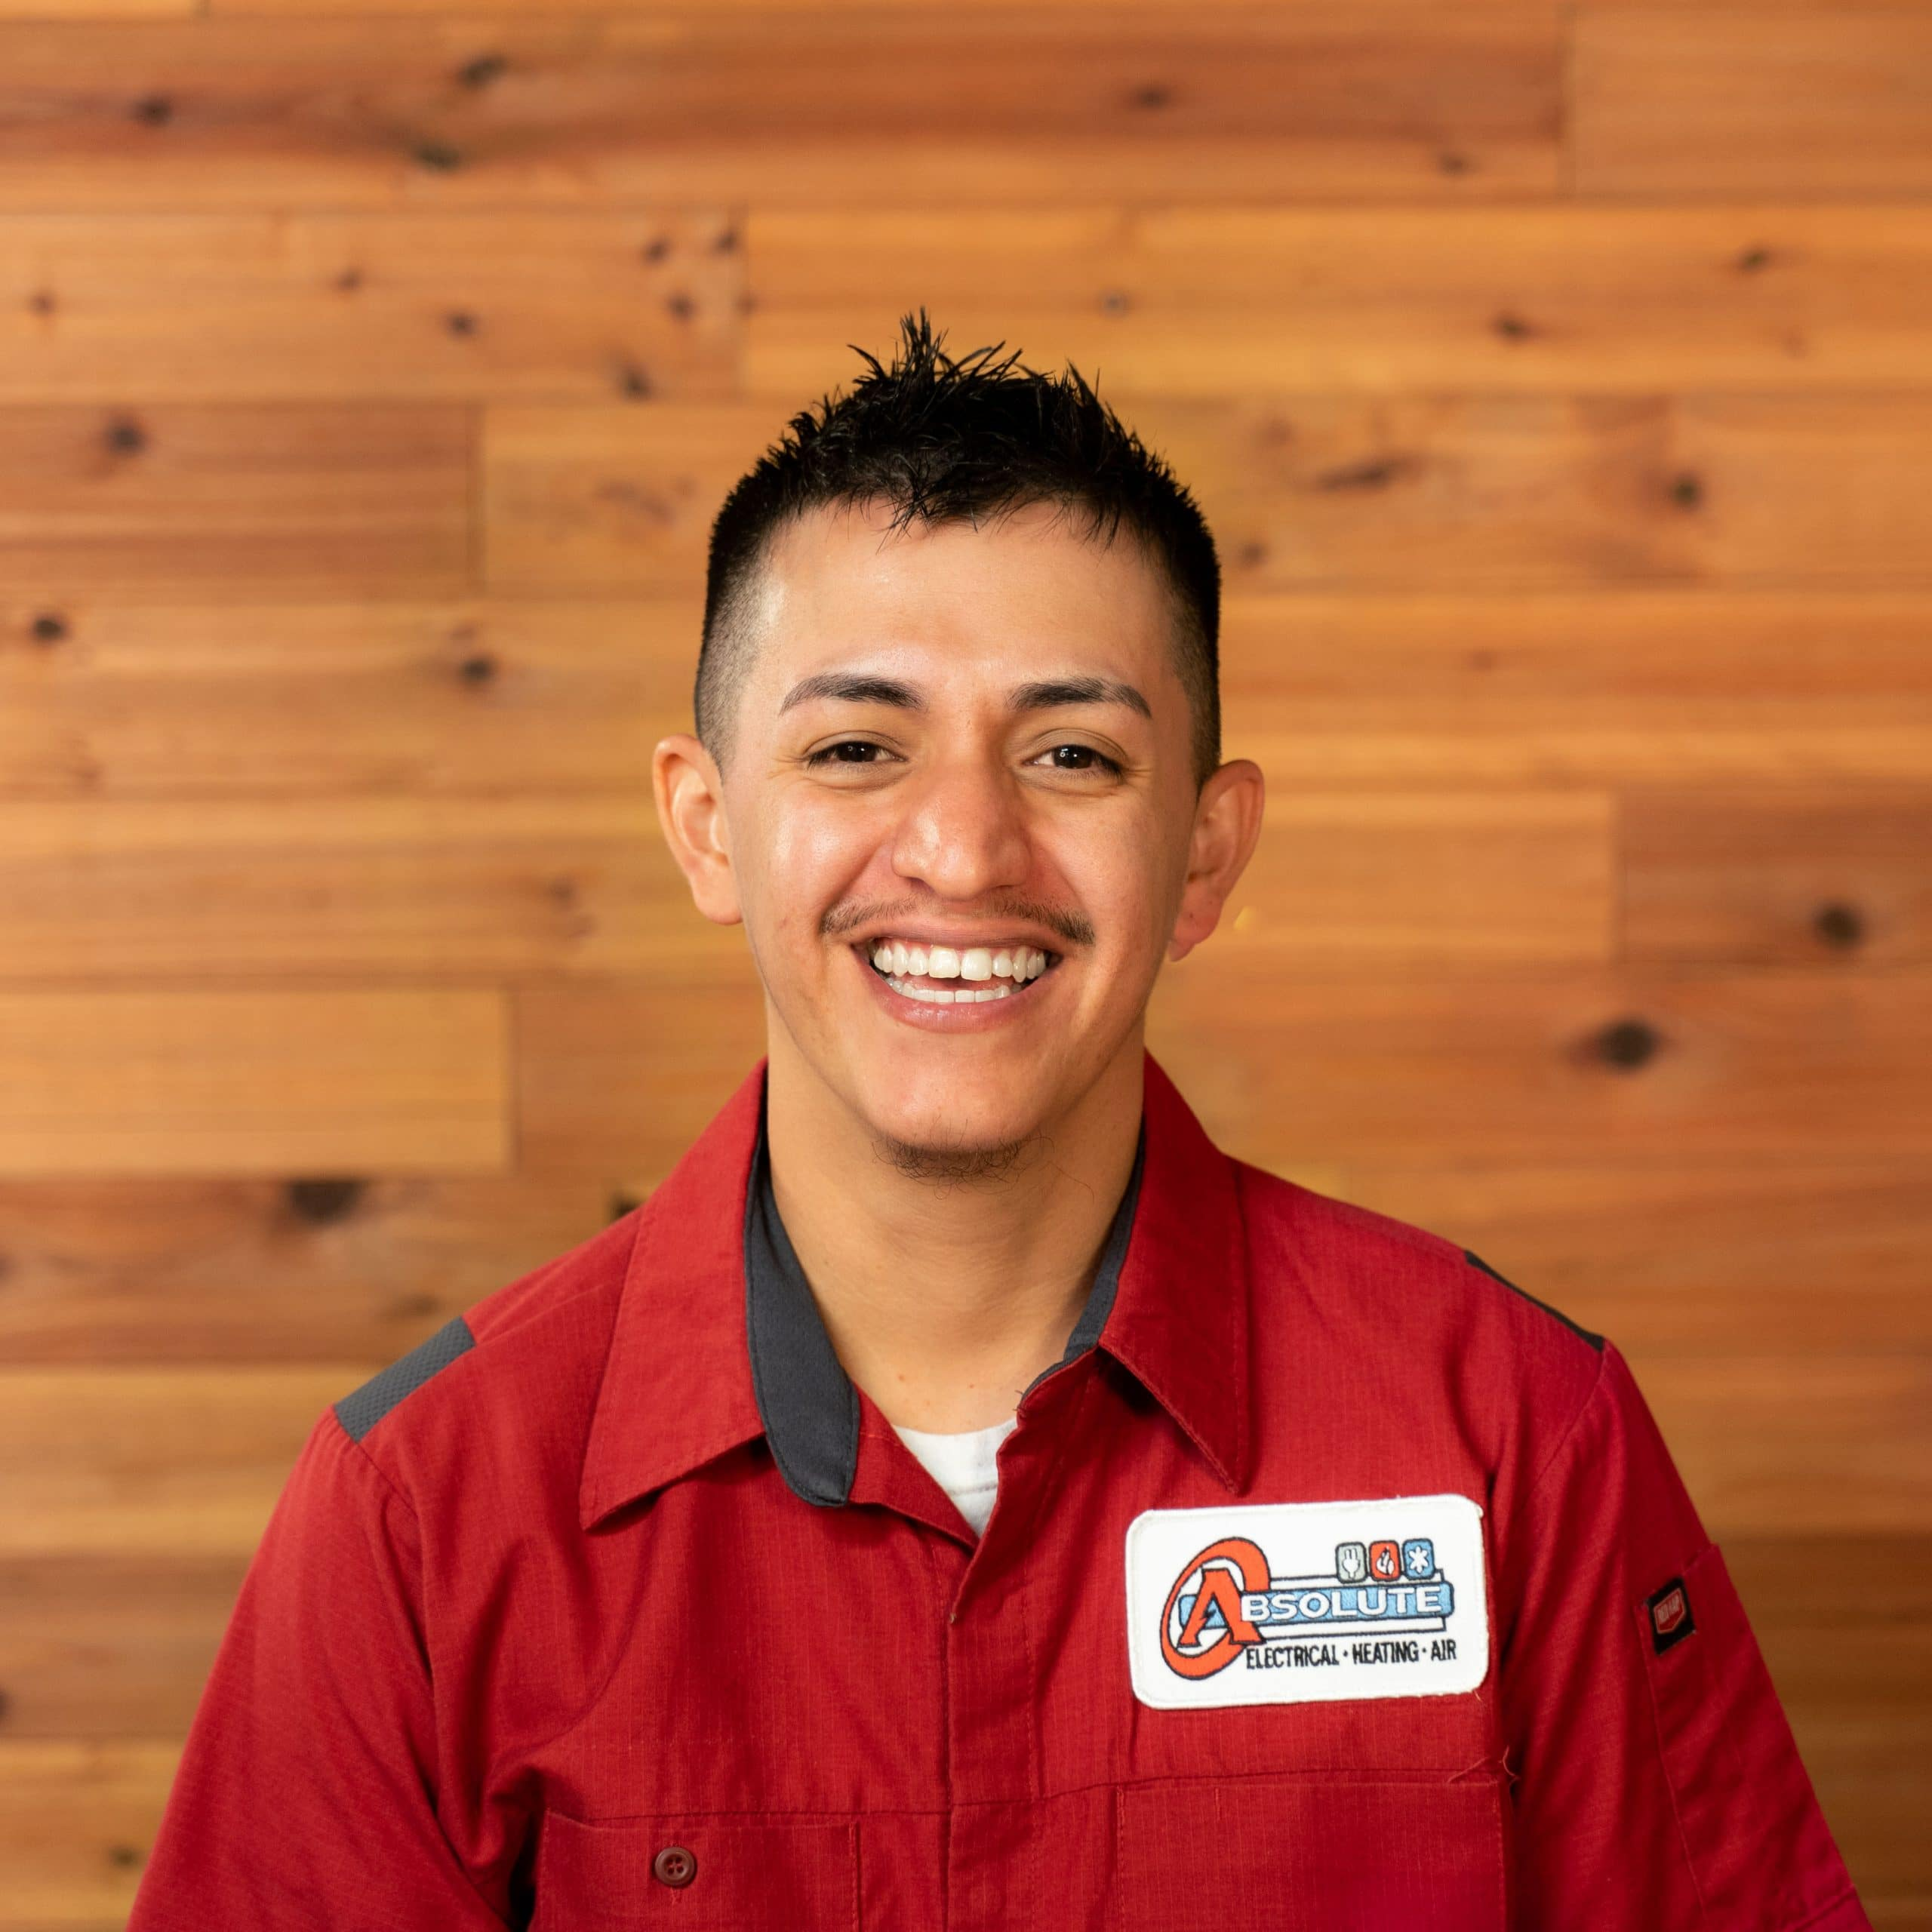 Adam HVAC Technician in Red for Absolute Electrical Heating and Air